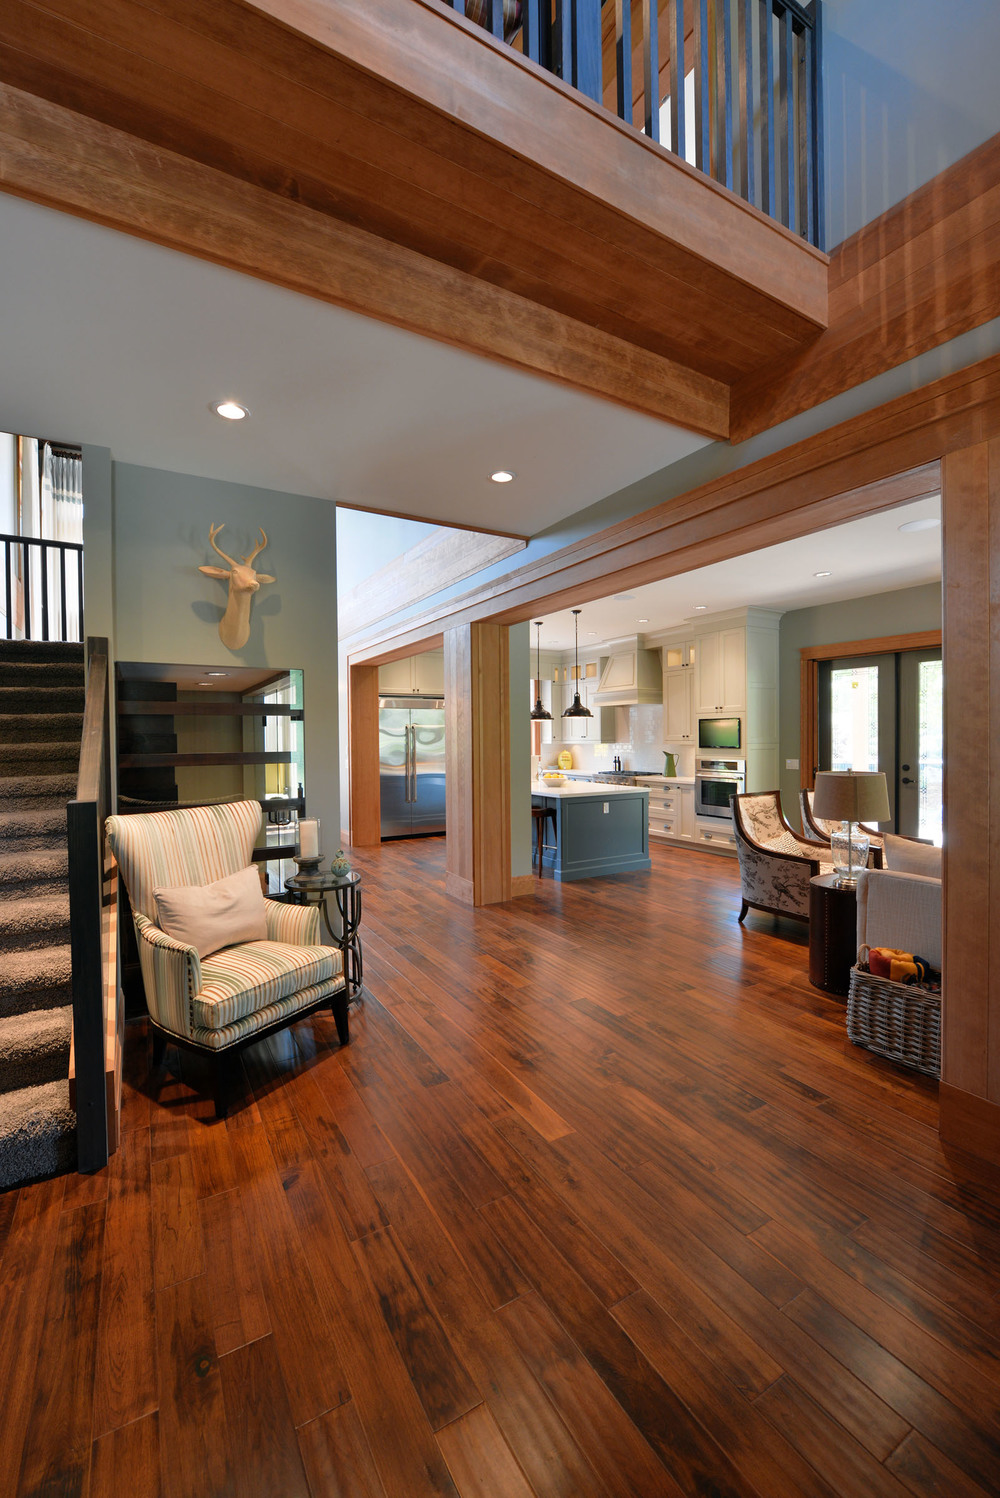 recessed-lighting-design-combine-with-white-ceiling-plus-engineered-hardwood-floors-ideas-somerset-flooring-engineered-hardwood-floor-how-to-install-engineered-hardwood-floors-hardwood.jpg